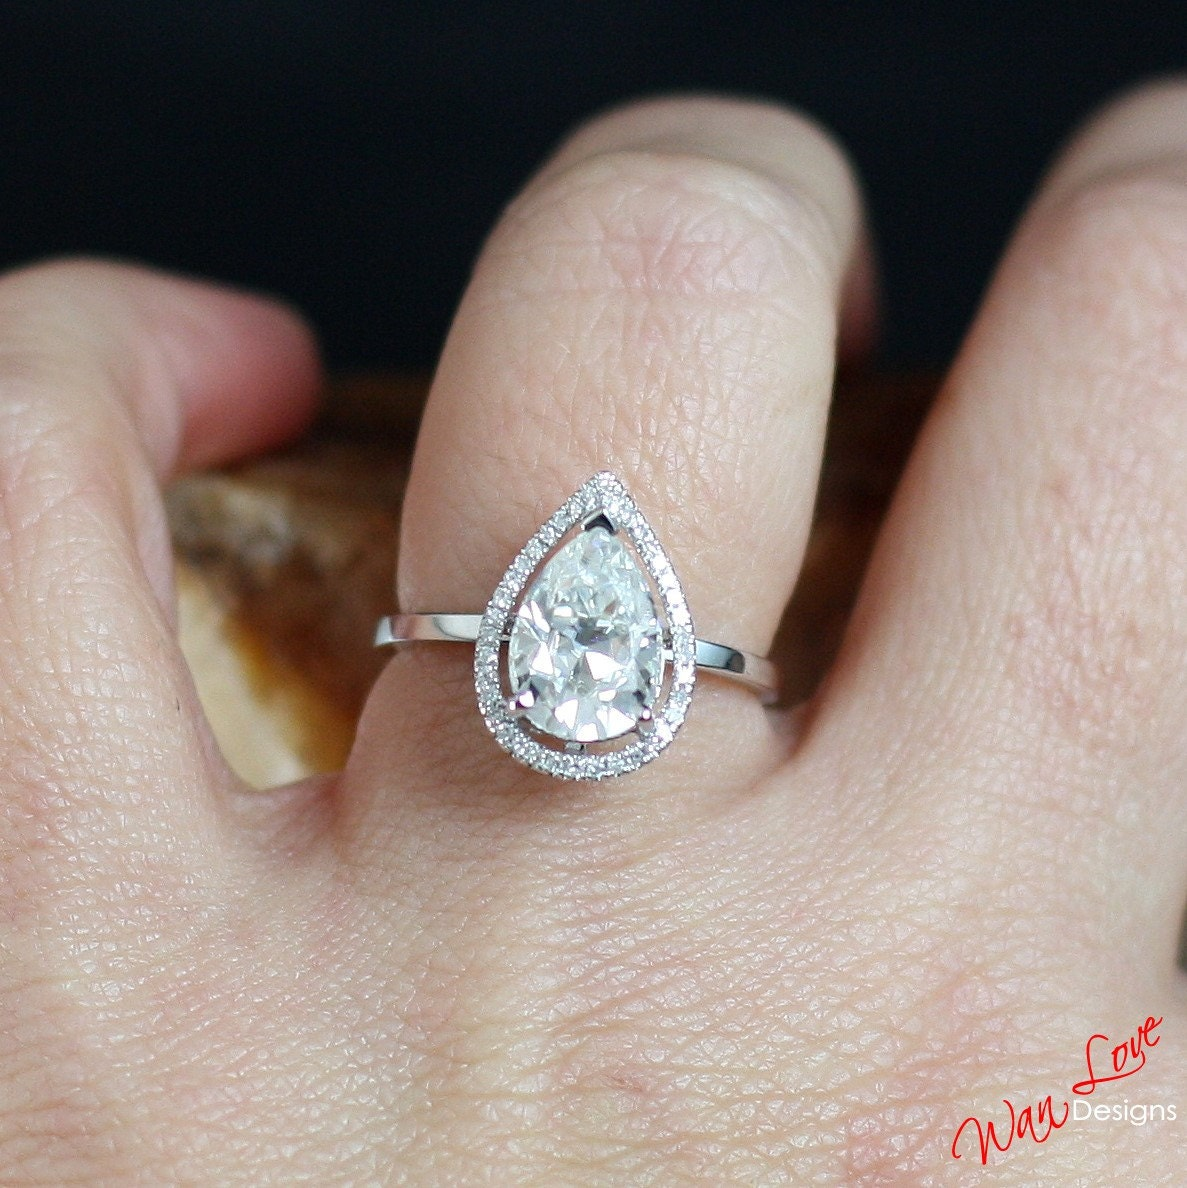 f1 moissanite diamond def pear halo engagement ring plain. Black Bedroom Furniture Sets. Home Design Ideas